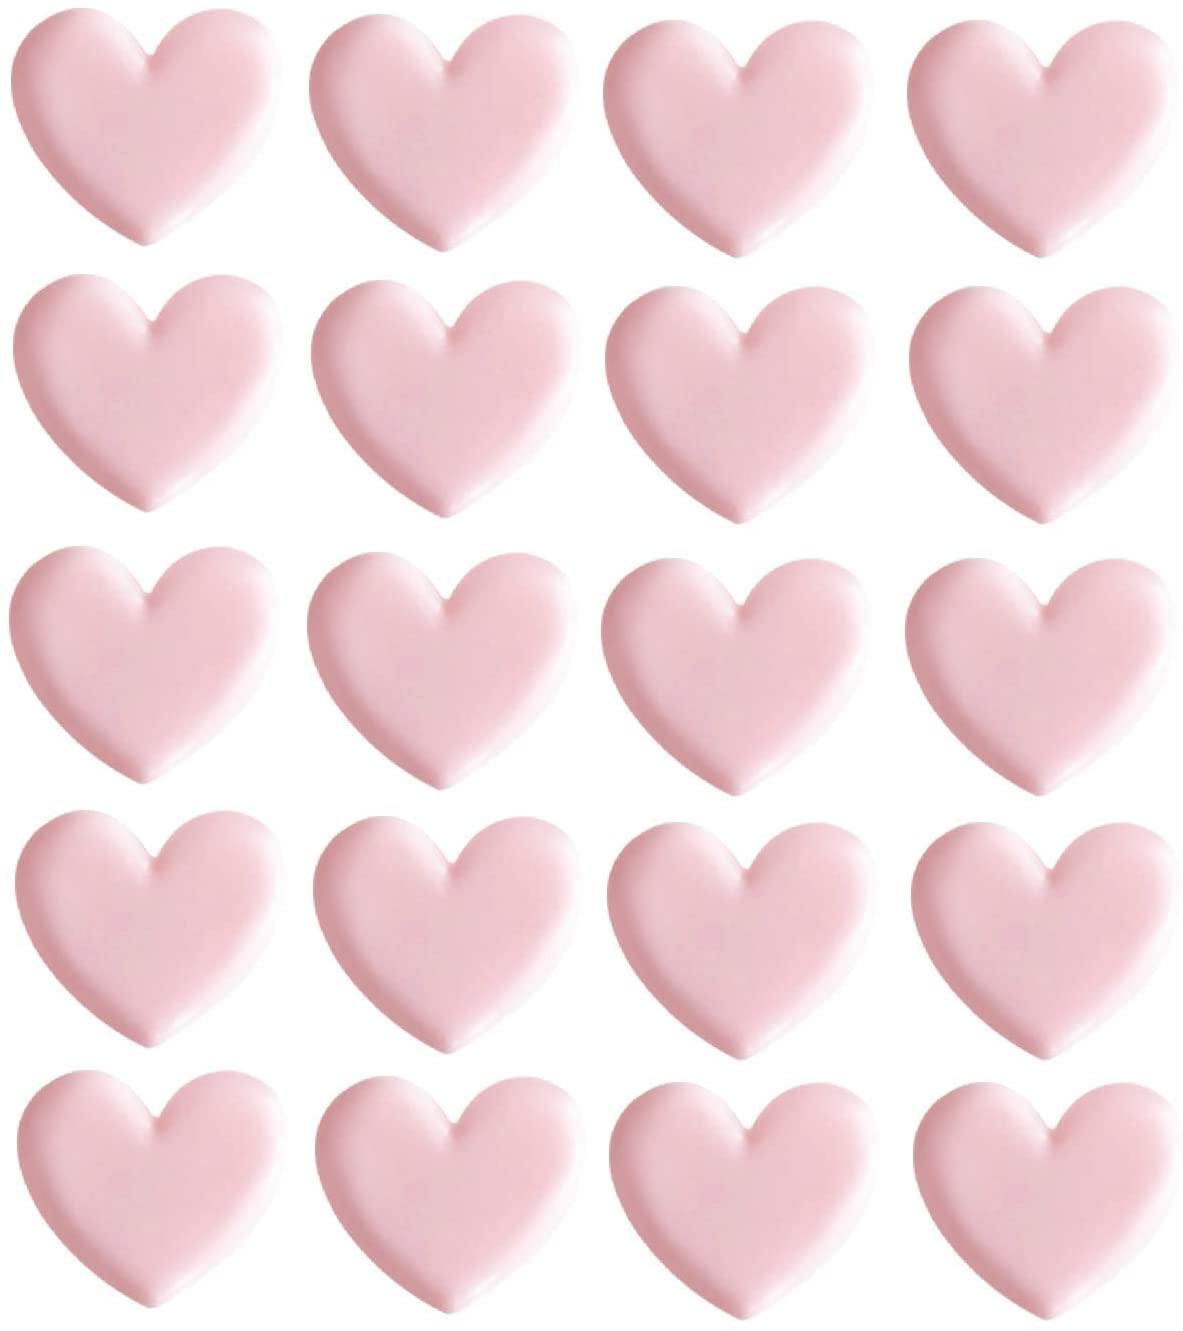 Chris.W Cute Heart Shaped Binder Clips, Mini Decorative Paper Clips, 1.4 x 0.82 inches, Pack of 20(Pink)